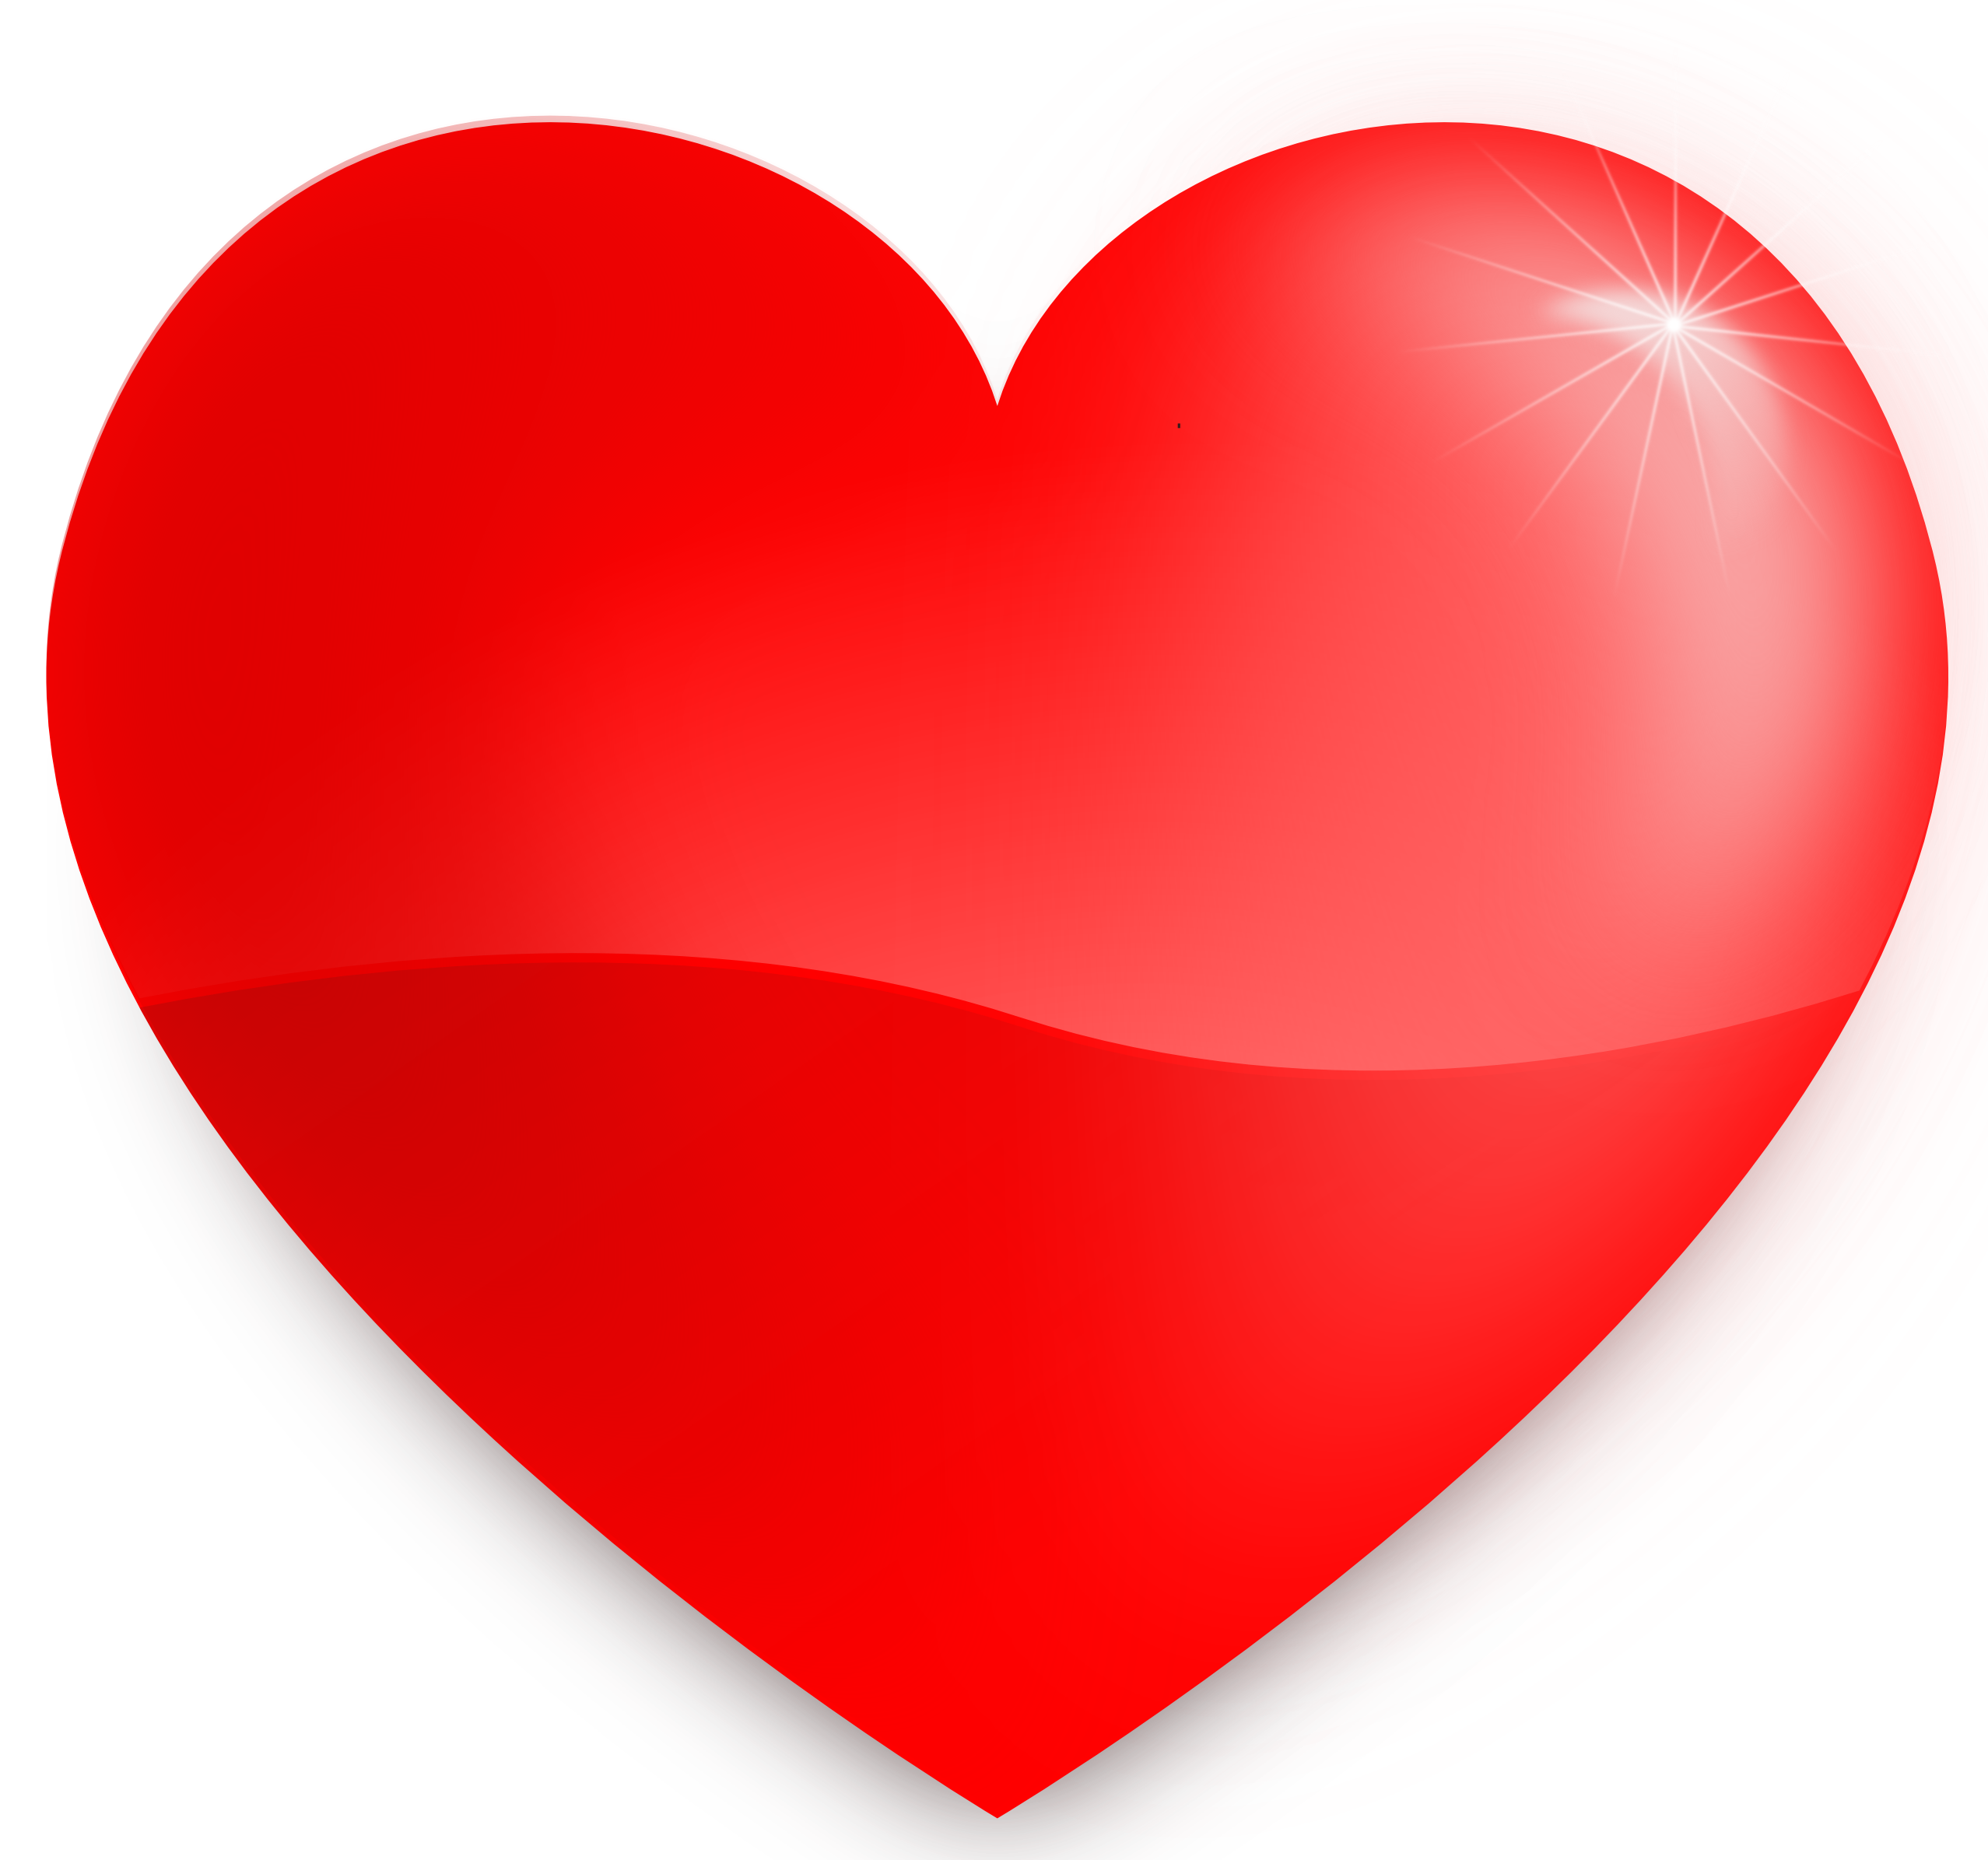 PNG File Name: Red Heart Plus